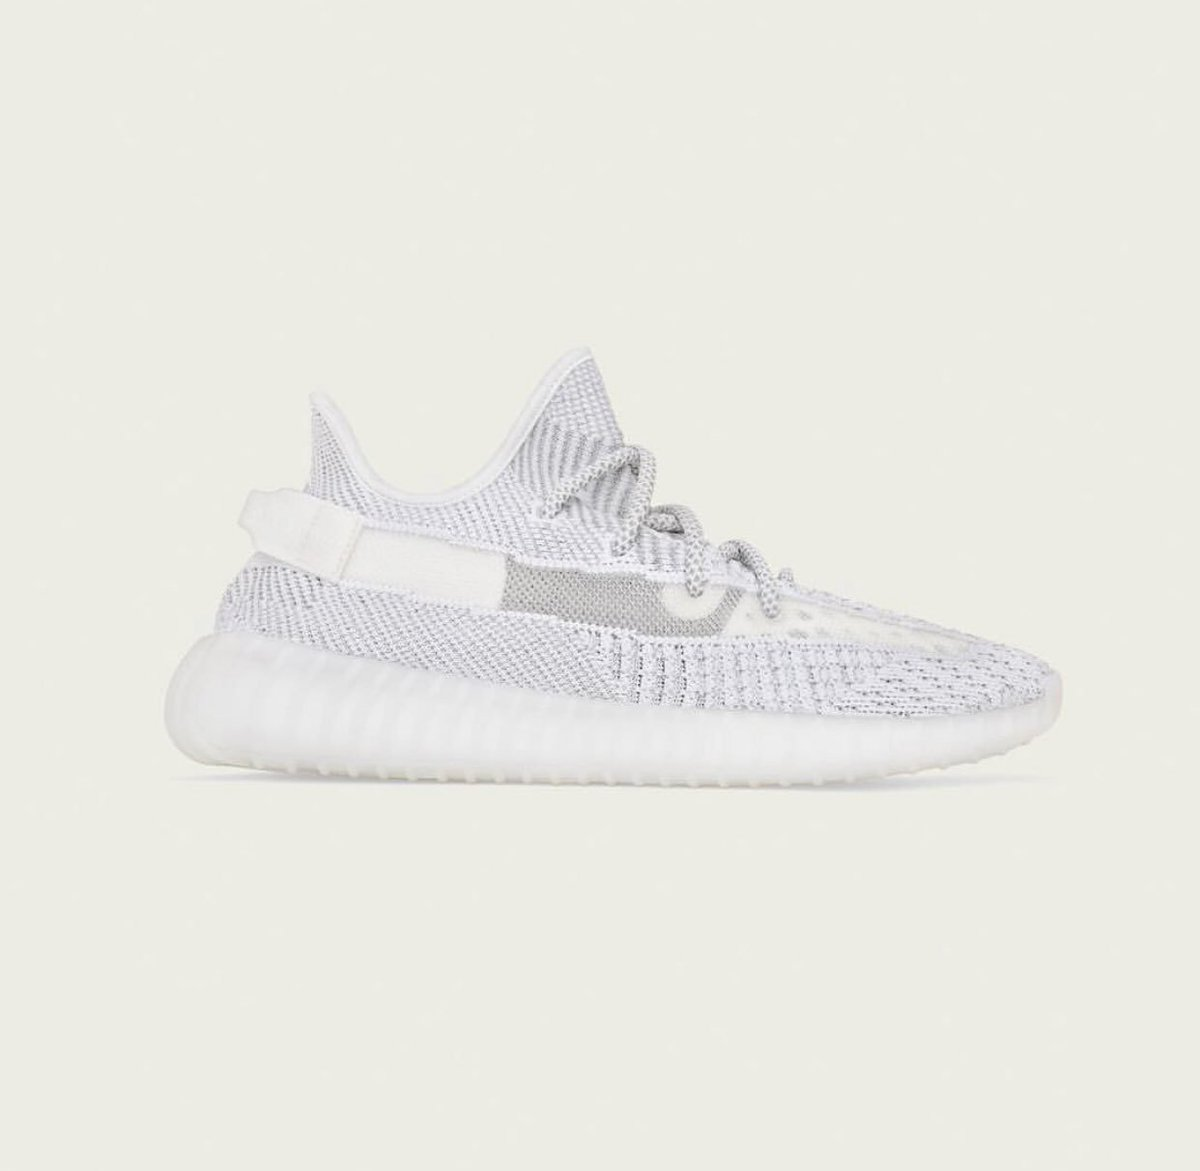 """350 Is Boost Yeezy On """"static"""" Caliroots V2 TwitterPsstThe X8nOwk0P"""